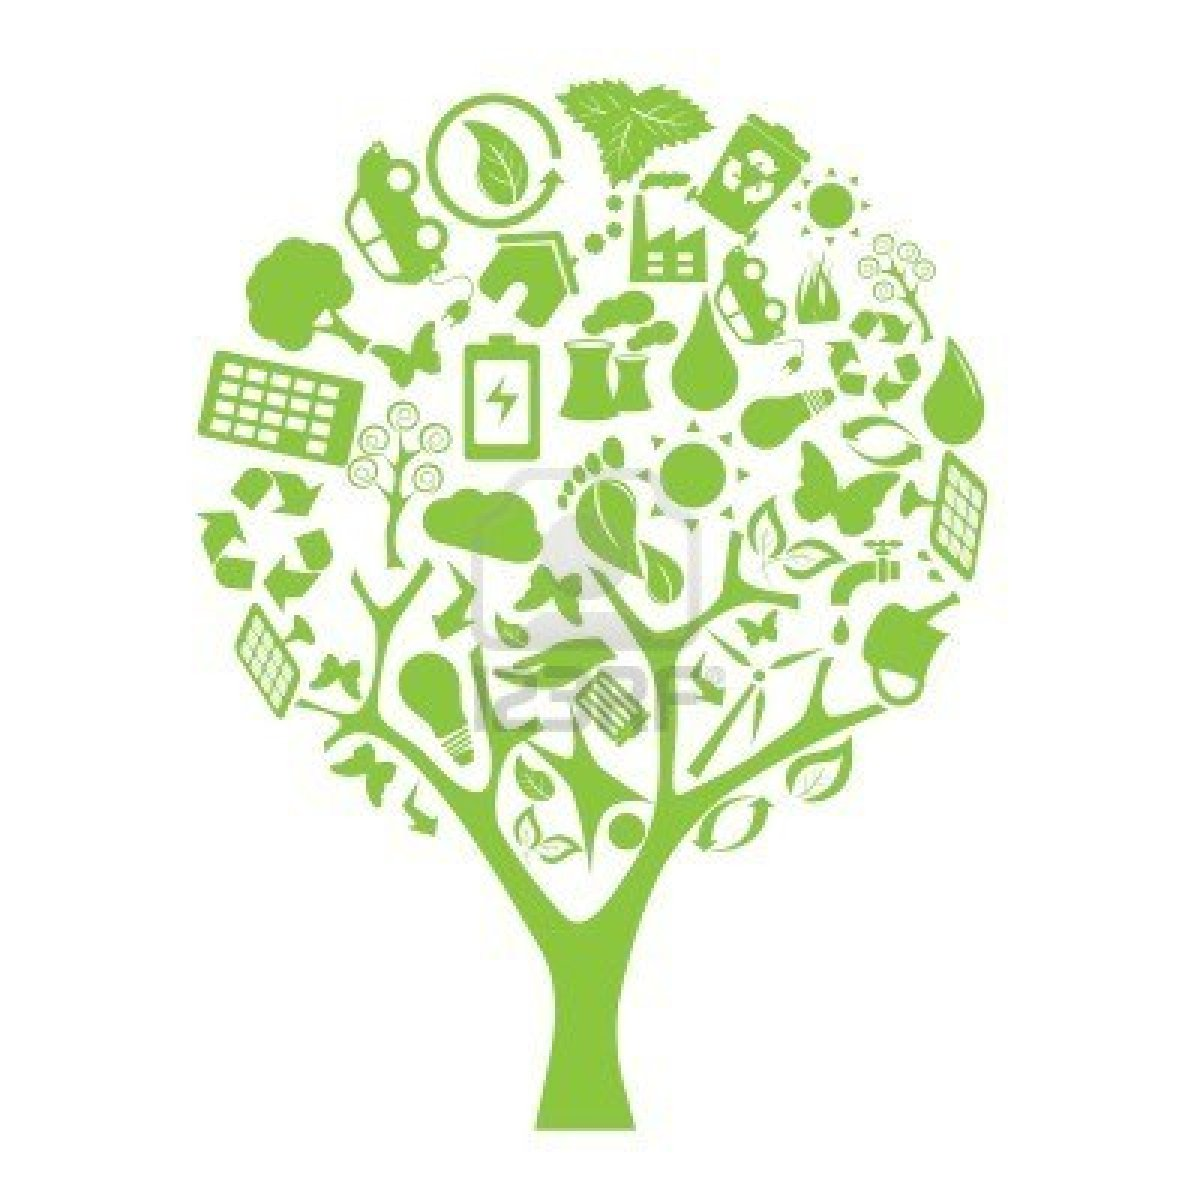 Green technology clipart